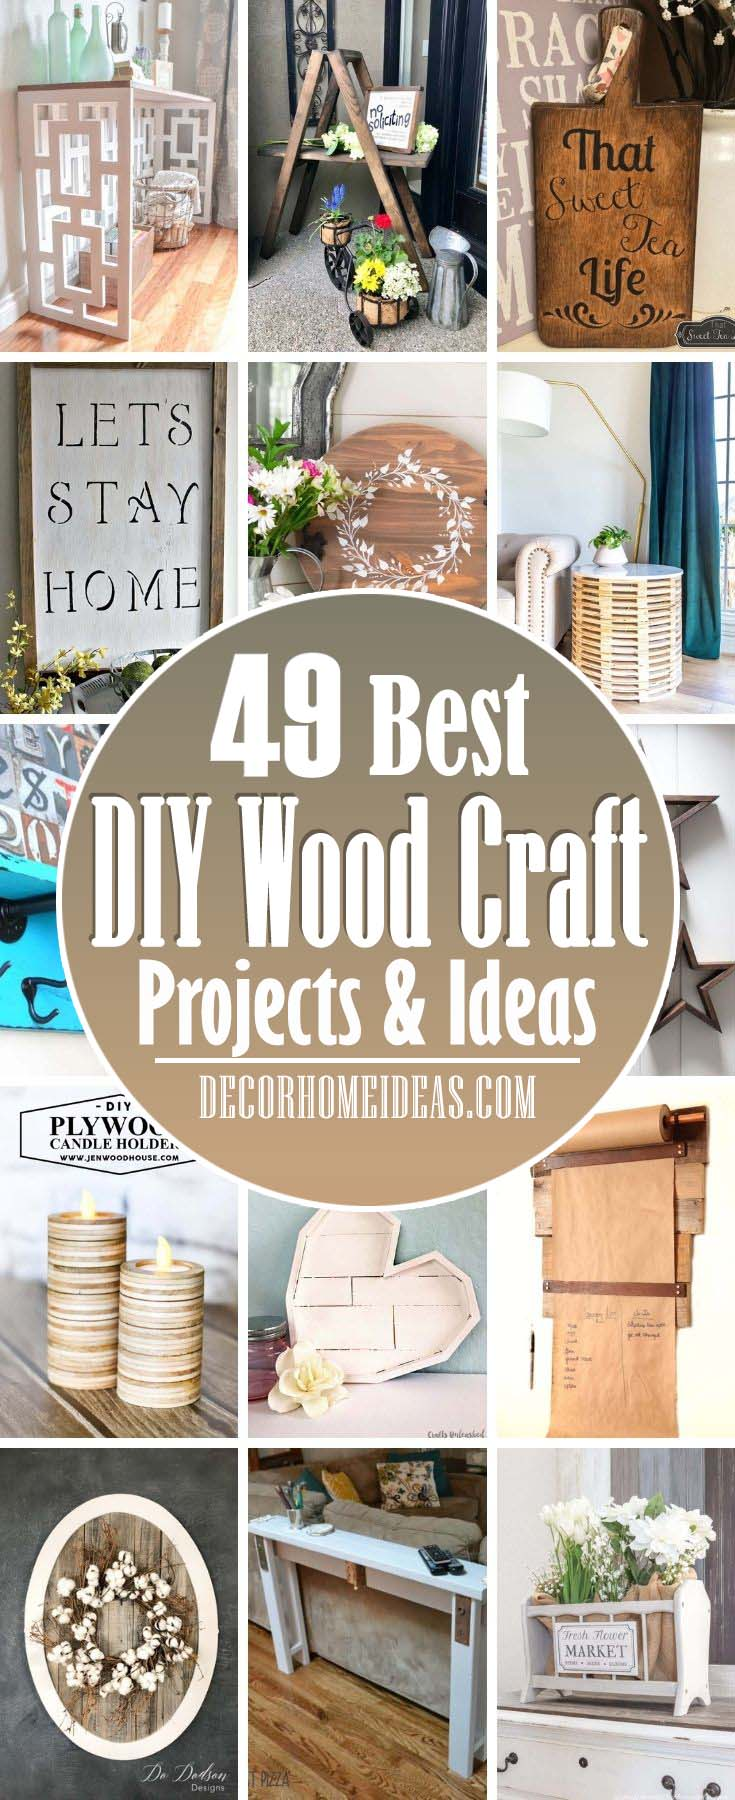 Best DIY Wood Craft Projects. We've picked more than 50 amazing but still easy DIY wood craft projects for home decor so that you can build something unique yourself. #decorhomeideas